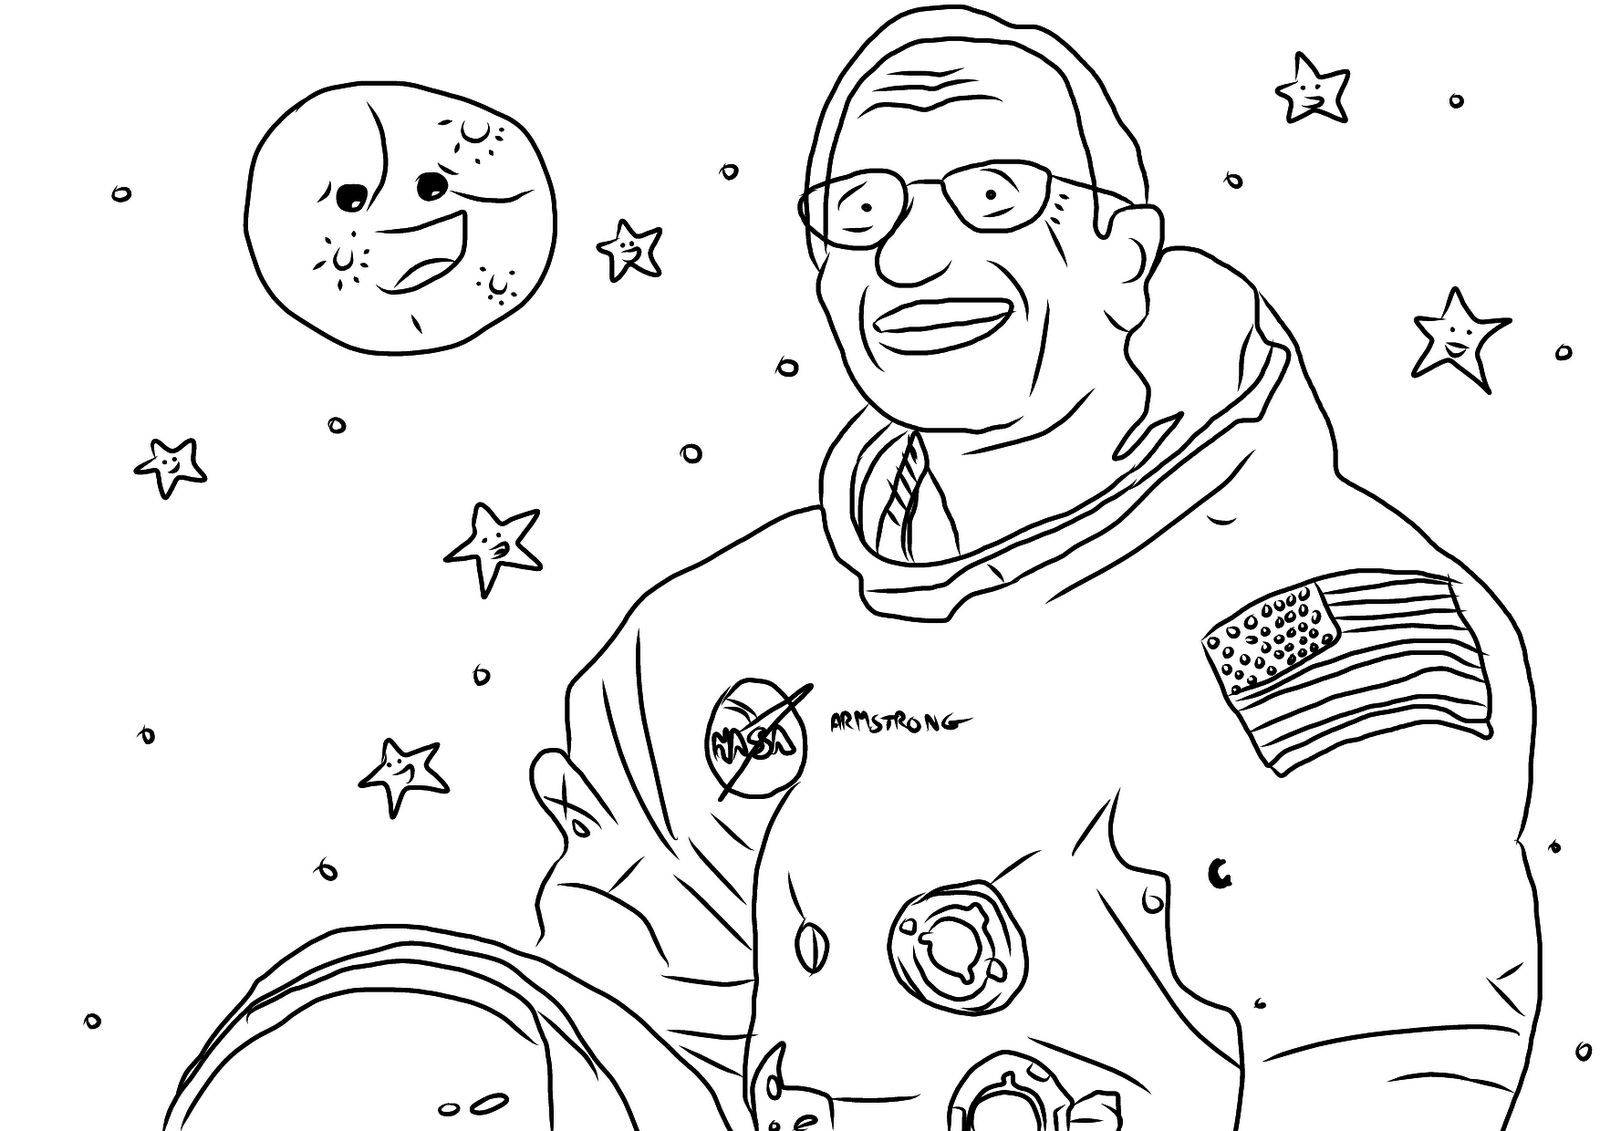 Favour in Fun: Neil Armstrong